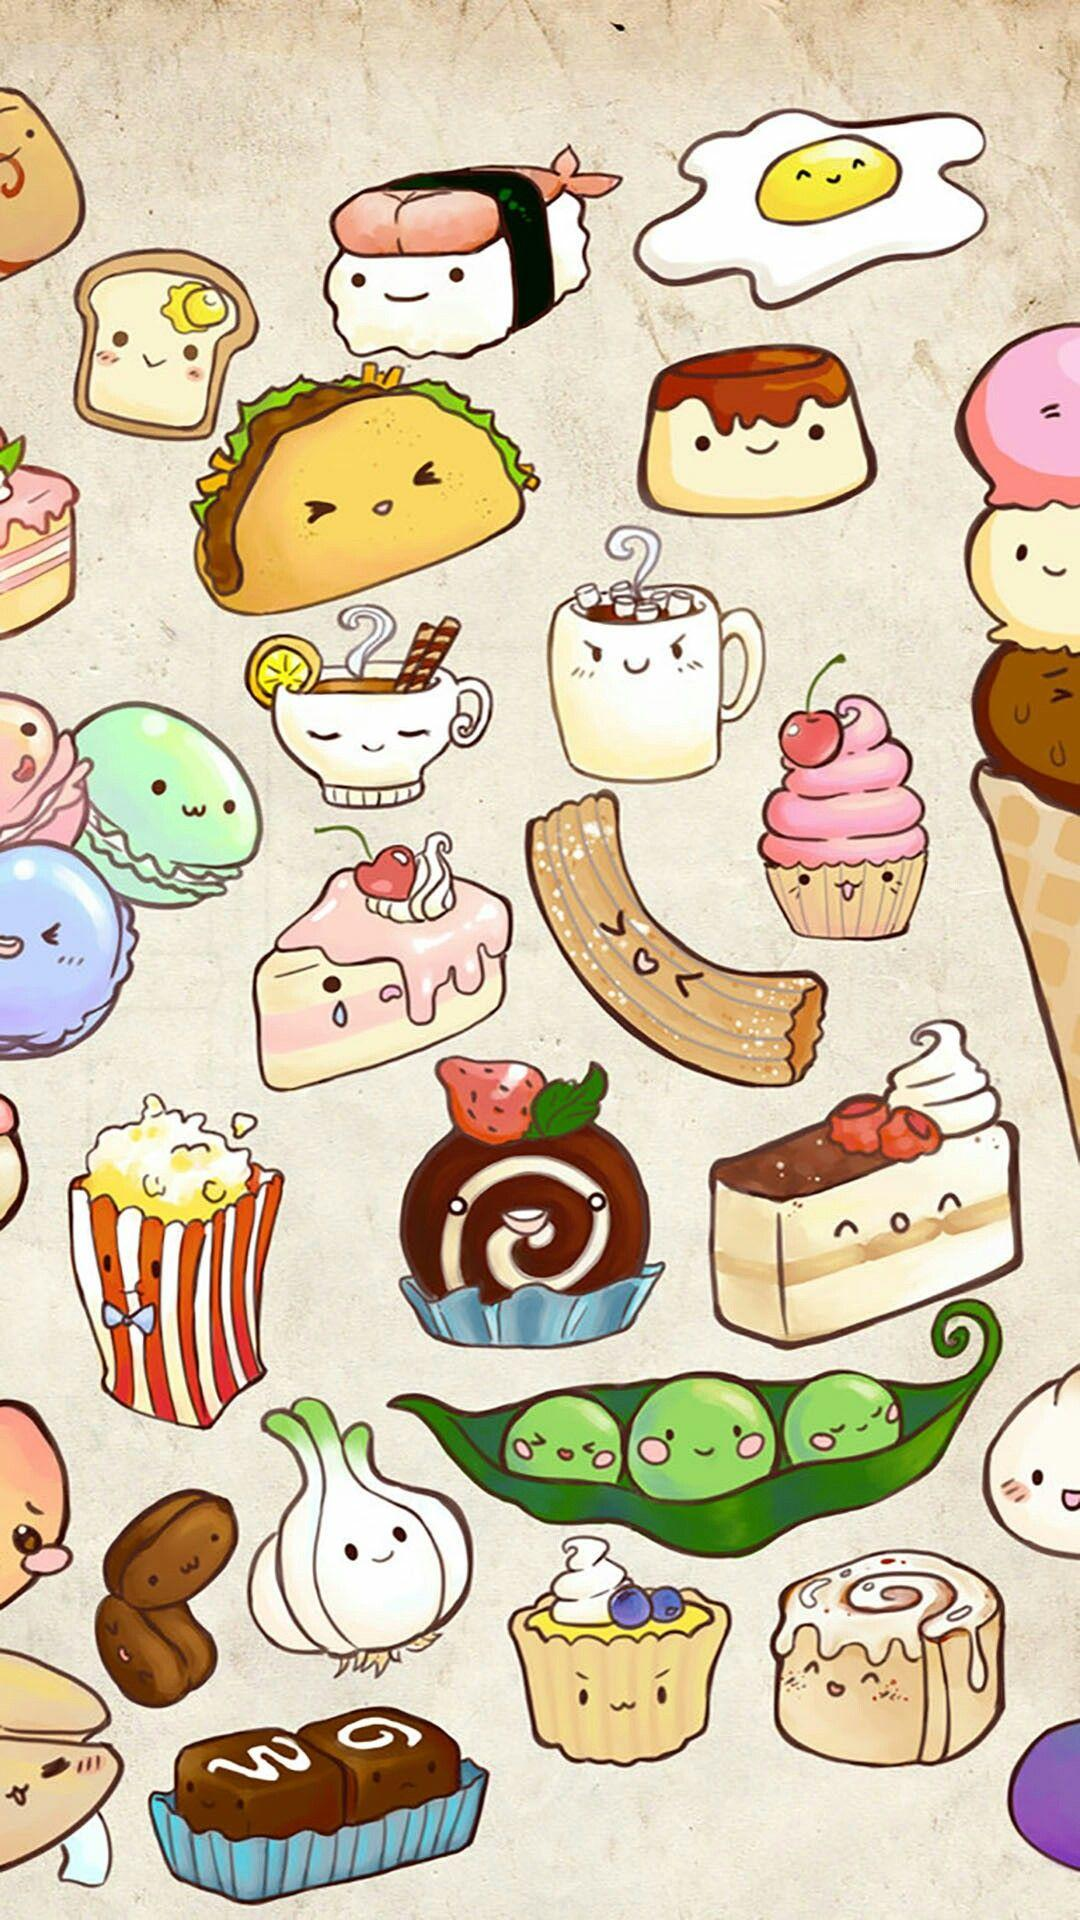 Cute Anime Food Wallpapers   Top Cute Anime Food Backgrounds 1080x1920